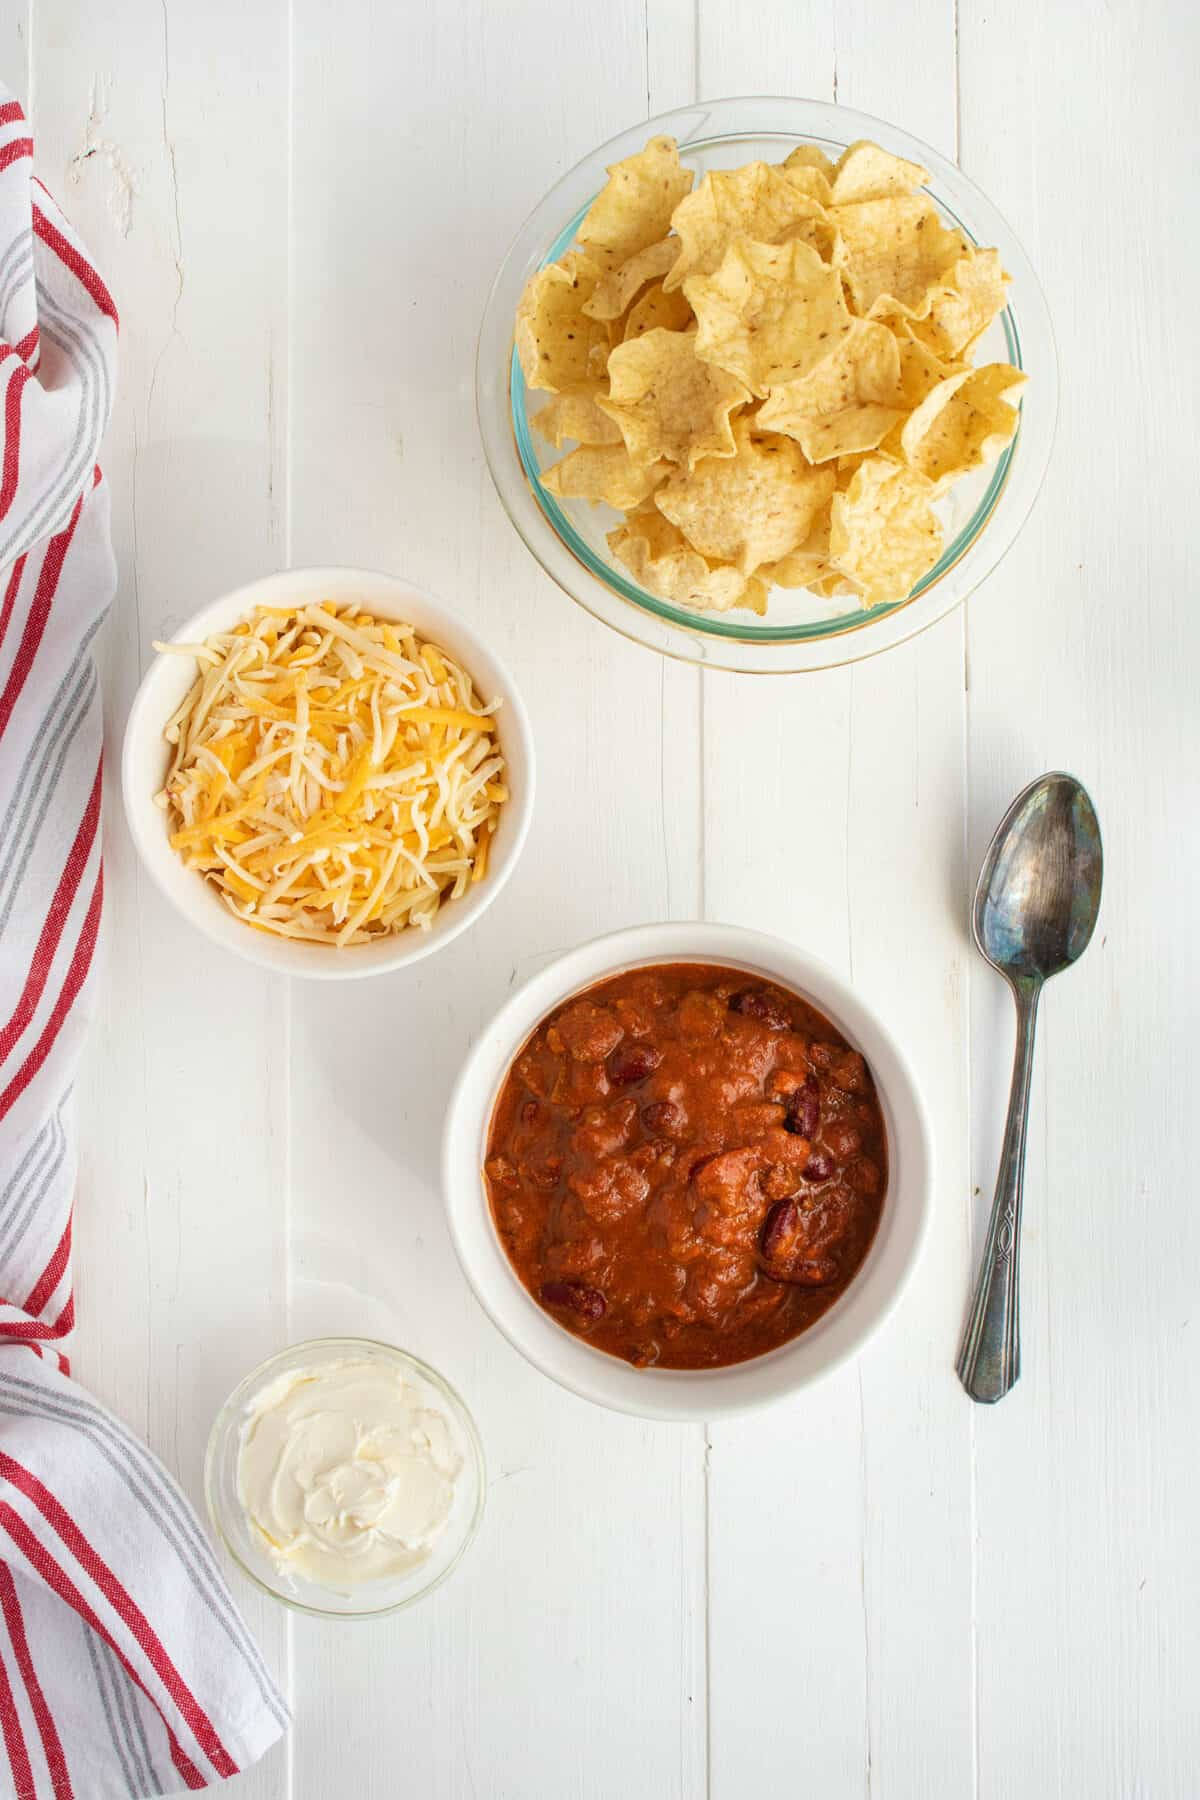 ingredients for chili cheese dip